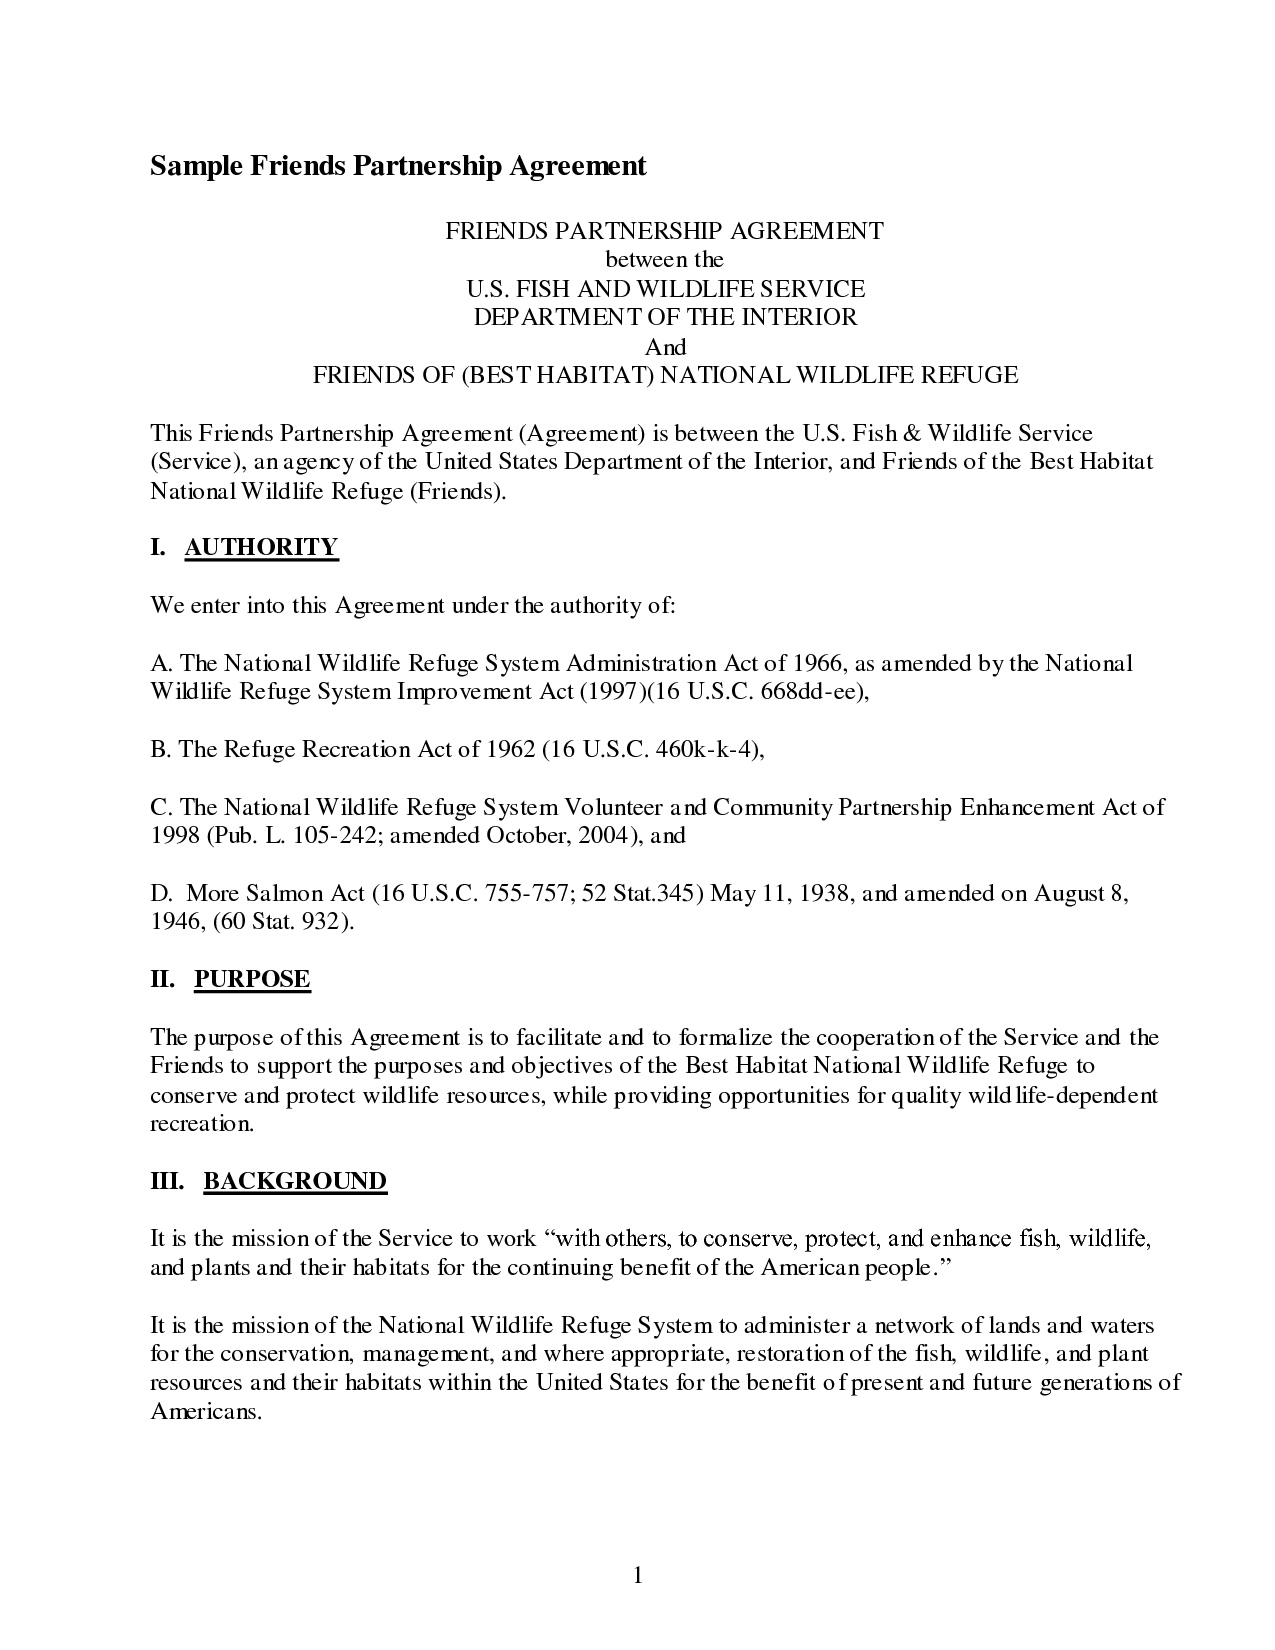 Personal Loan Agreement Letter Simple Loan Agreement Between Family Quick Personal Loan Vu X16096